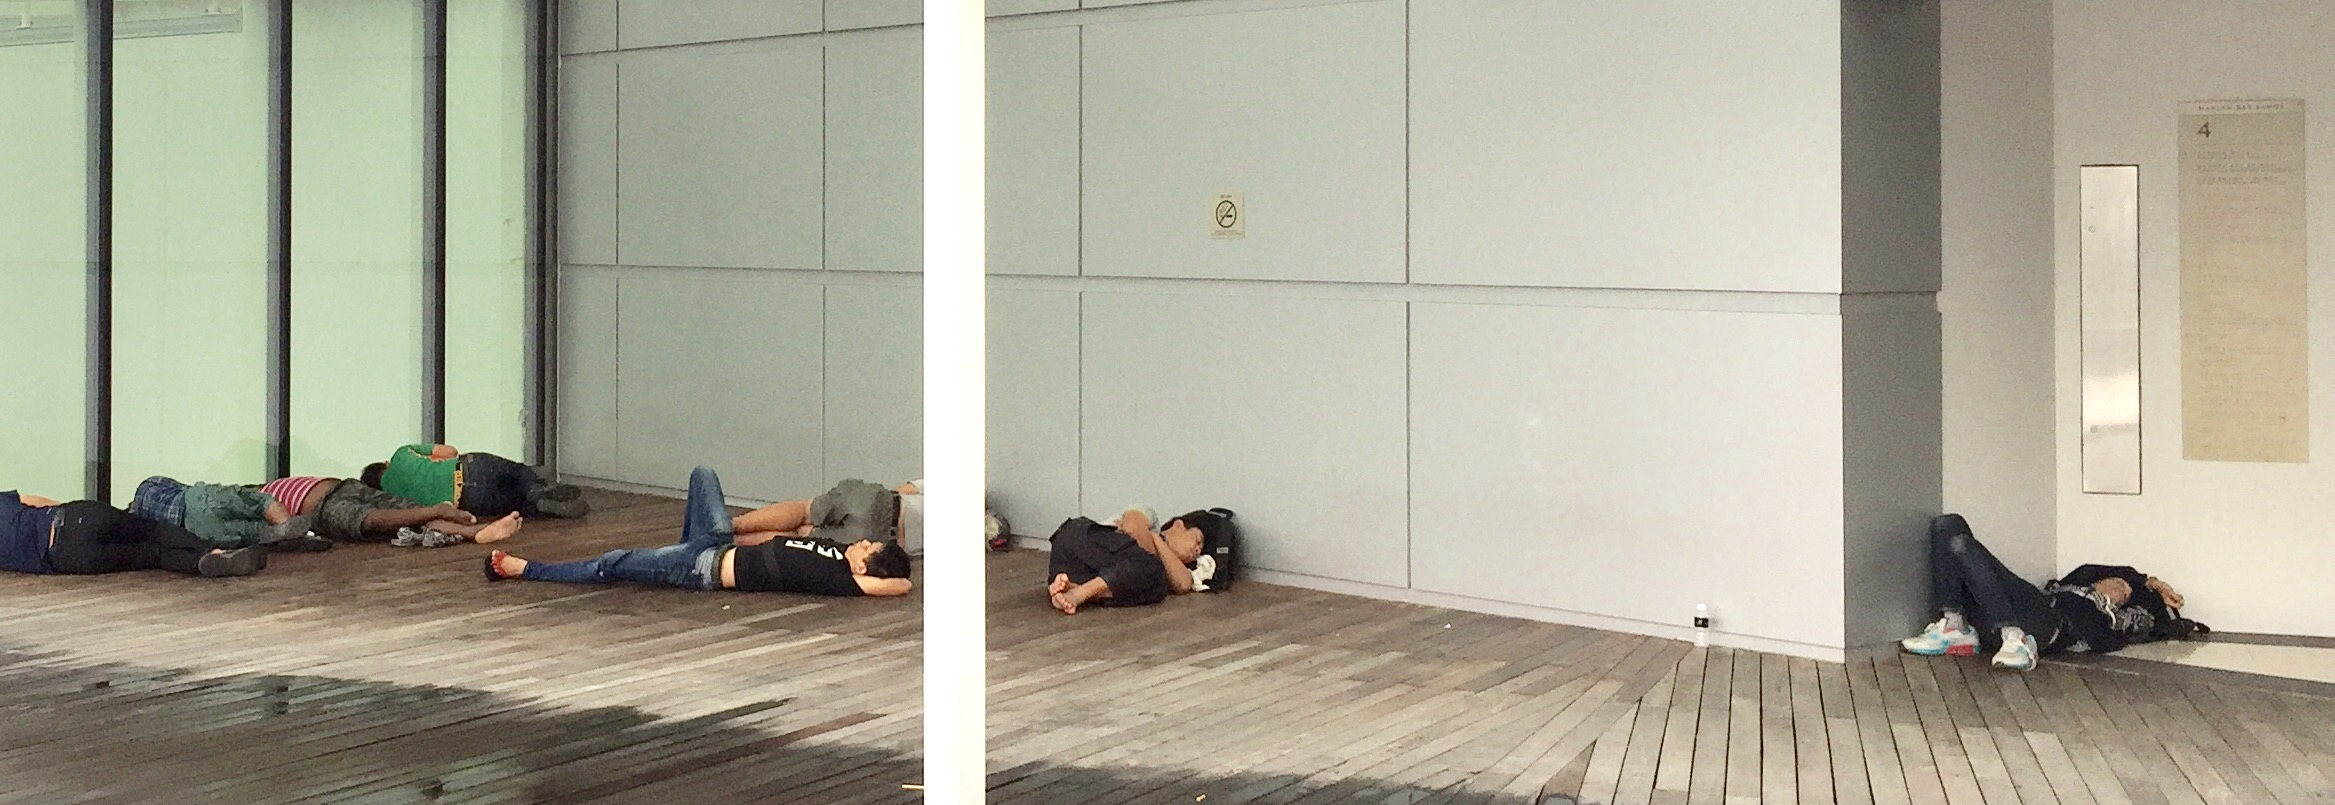 Employees or just general public sleeping on the roof area... Surprising...